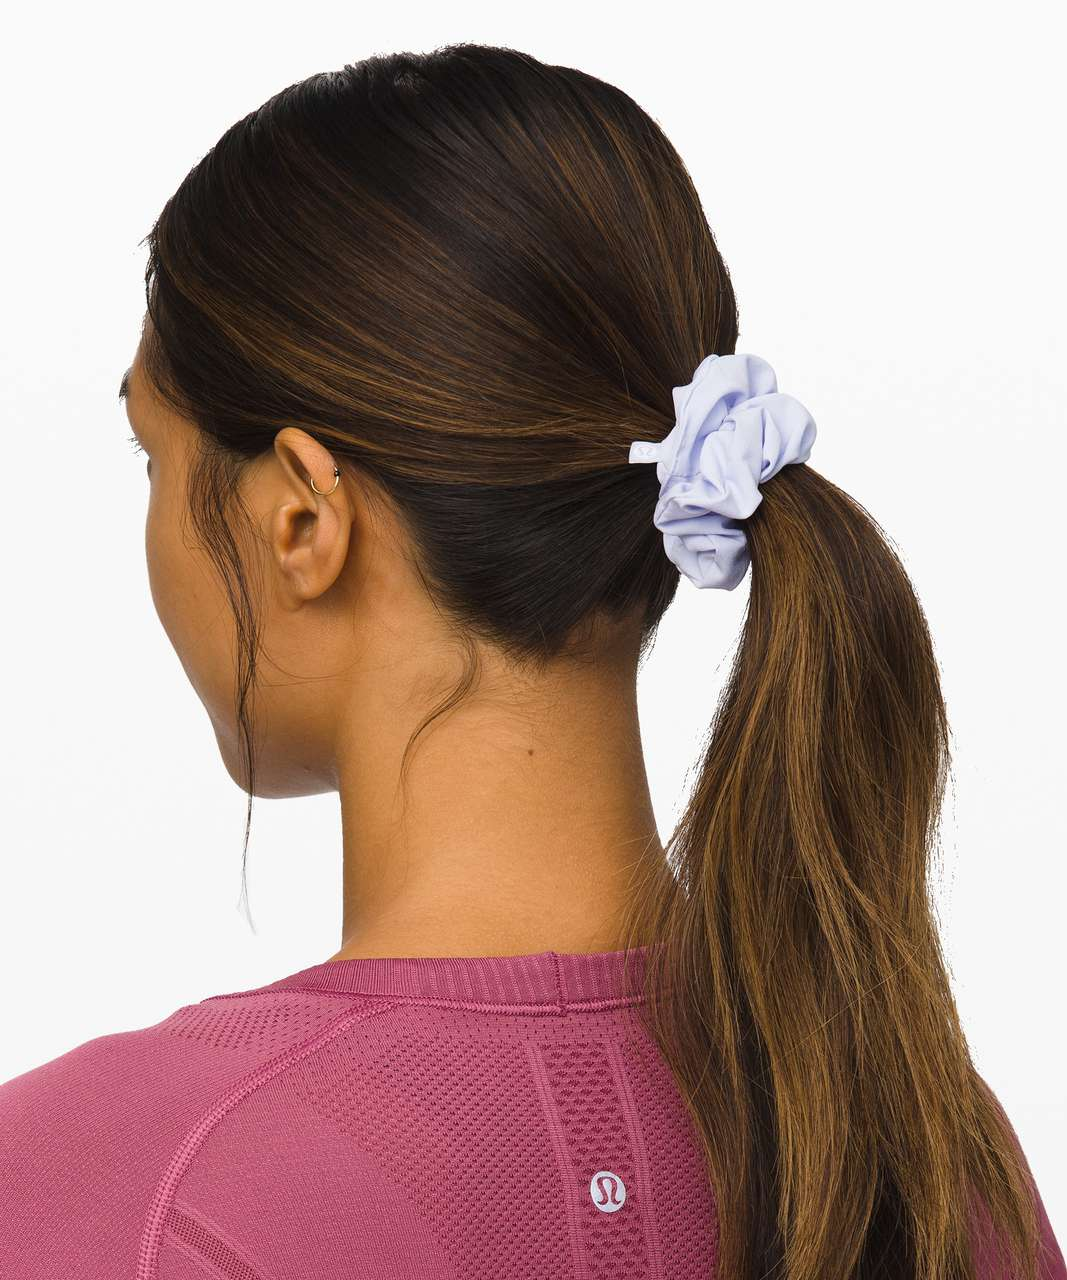 Lululemon Uplifting Scrunchie - Serene Blue